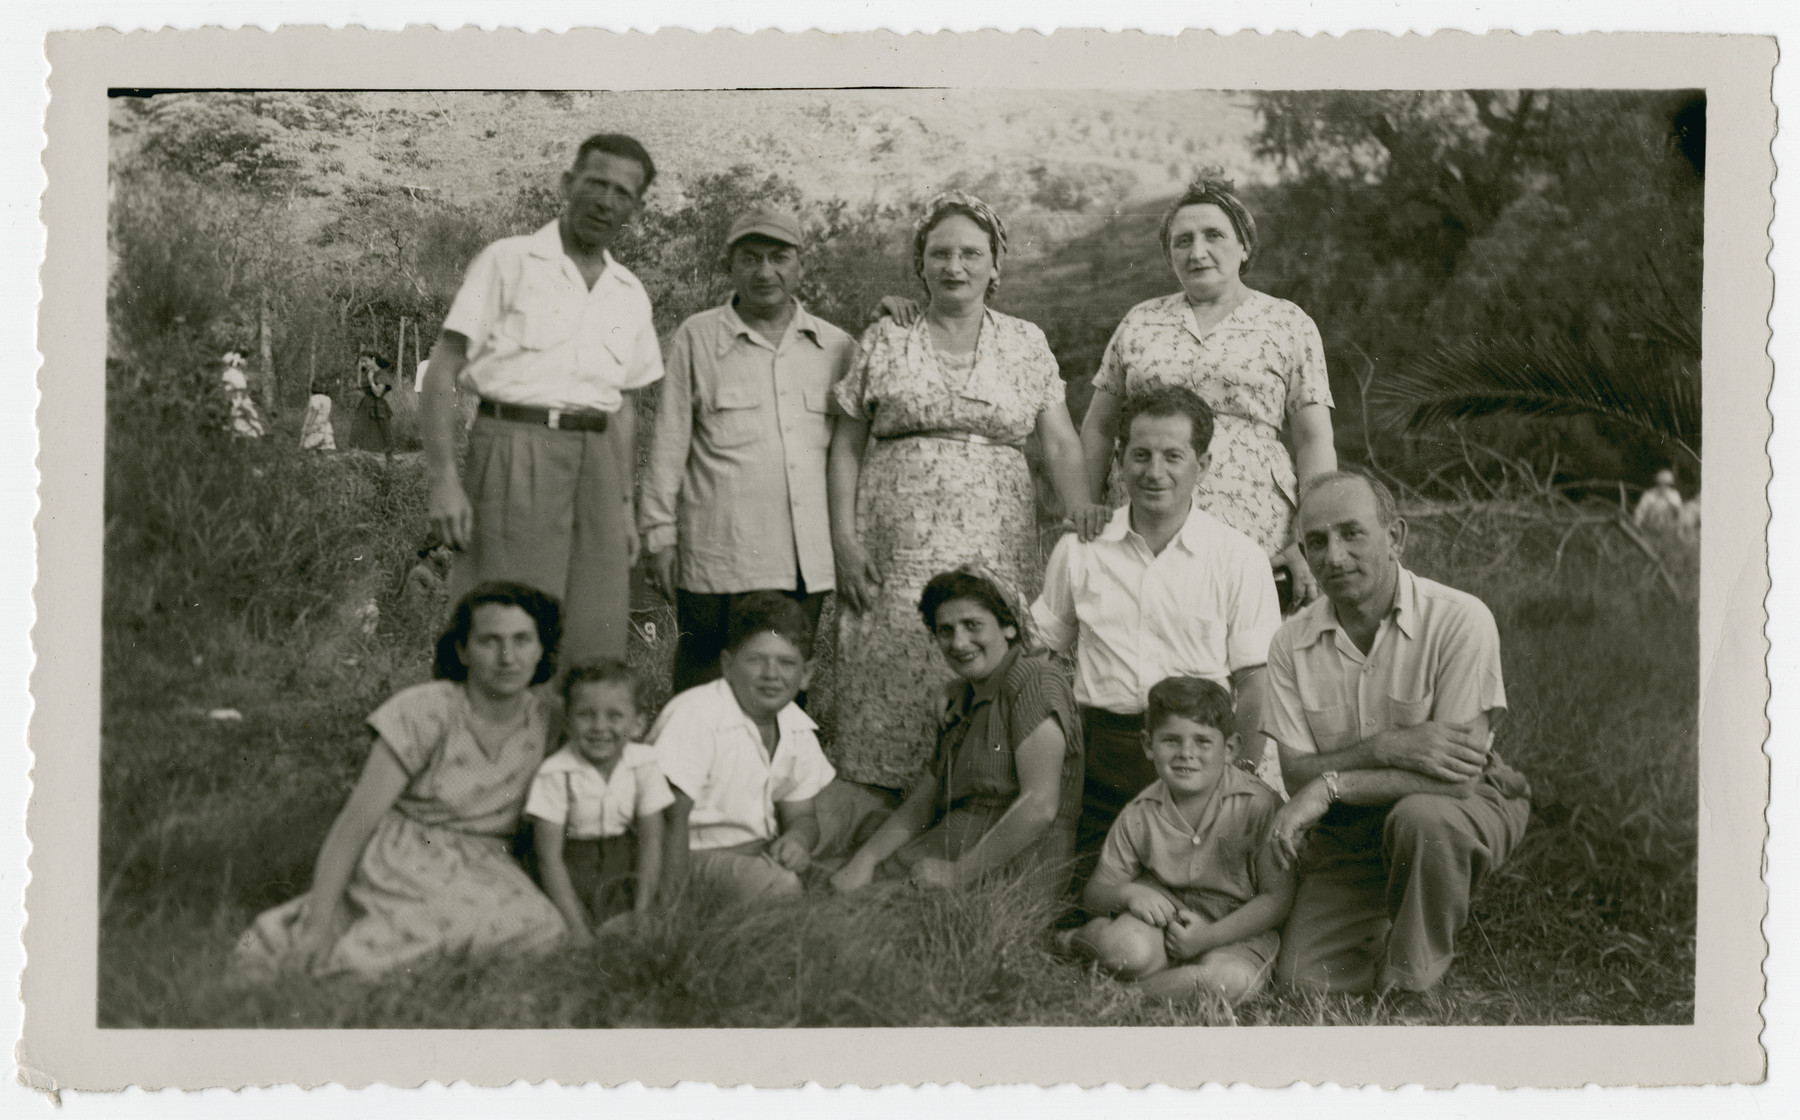 Group portrait of Jewish immigrants, primarily from Zelechow  Poland, in Costa Rica.